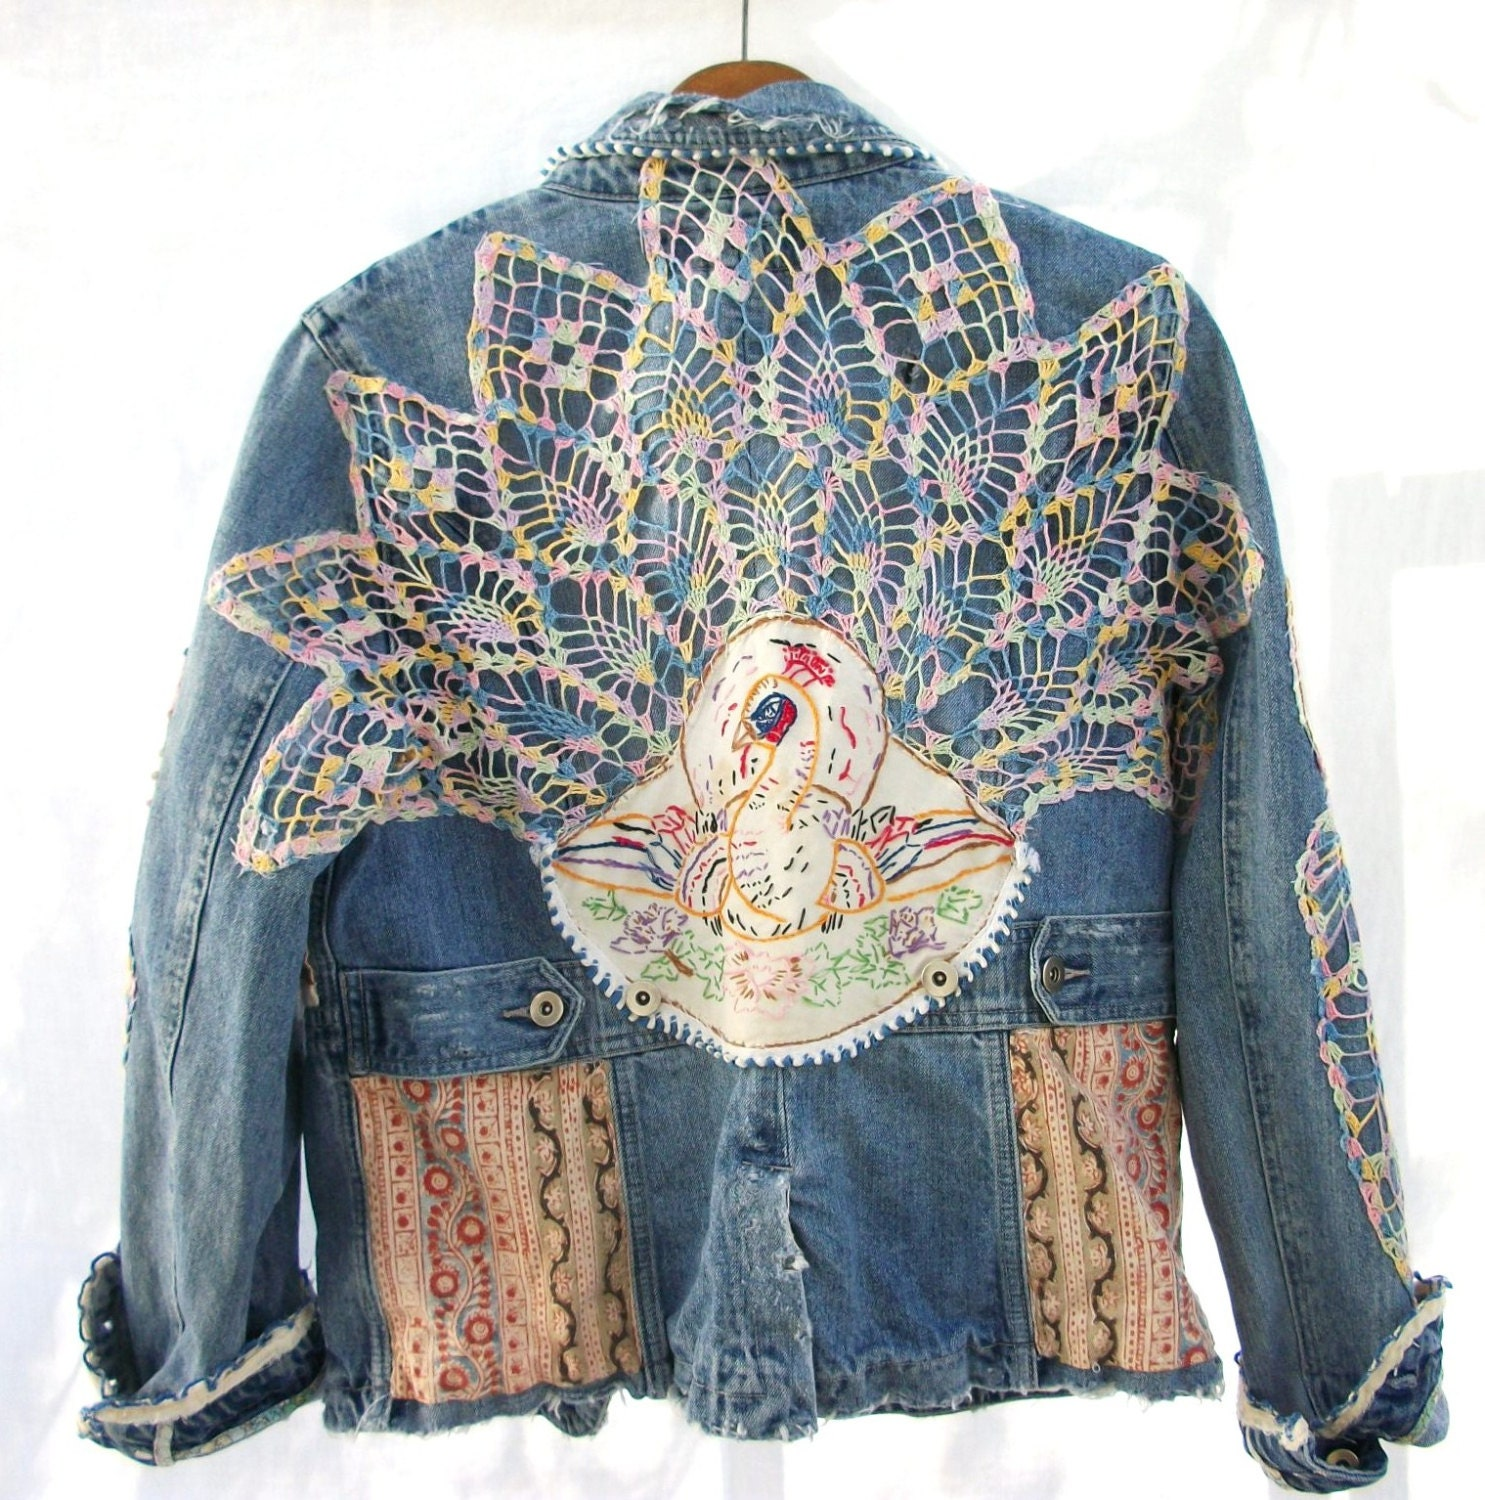 Aged Denim Jacket Vintage Crochet Amp Embroidered Peacock